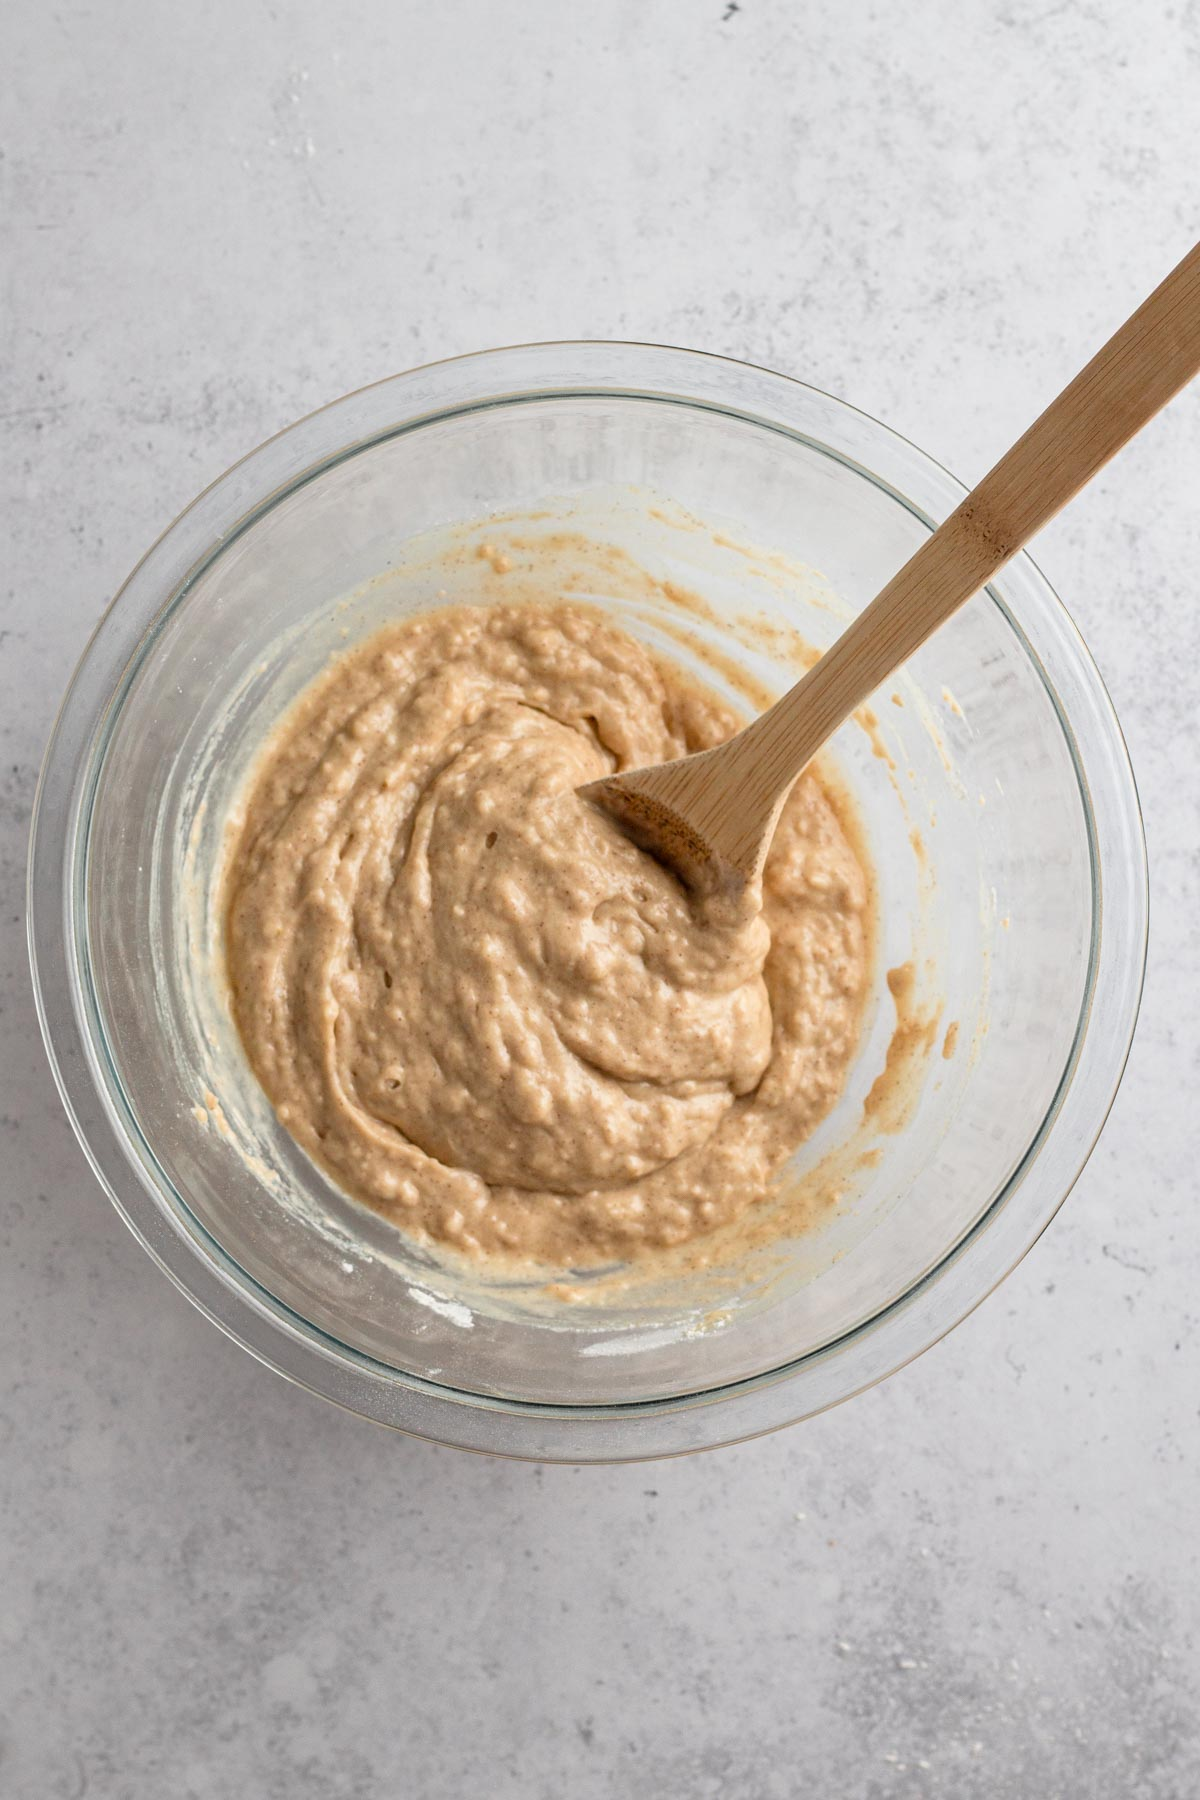 overhead view of muffin batter in a glass bowl